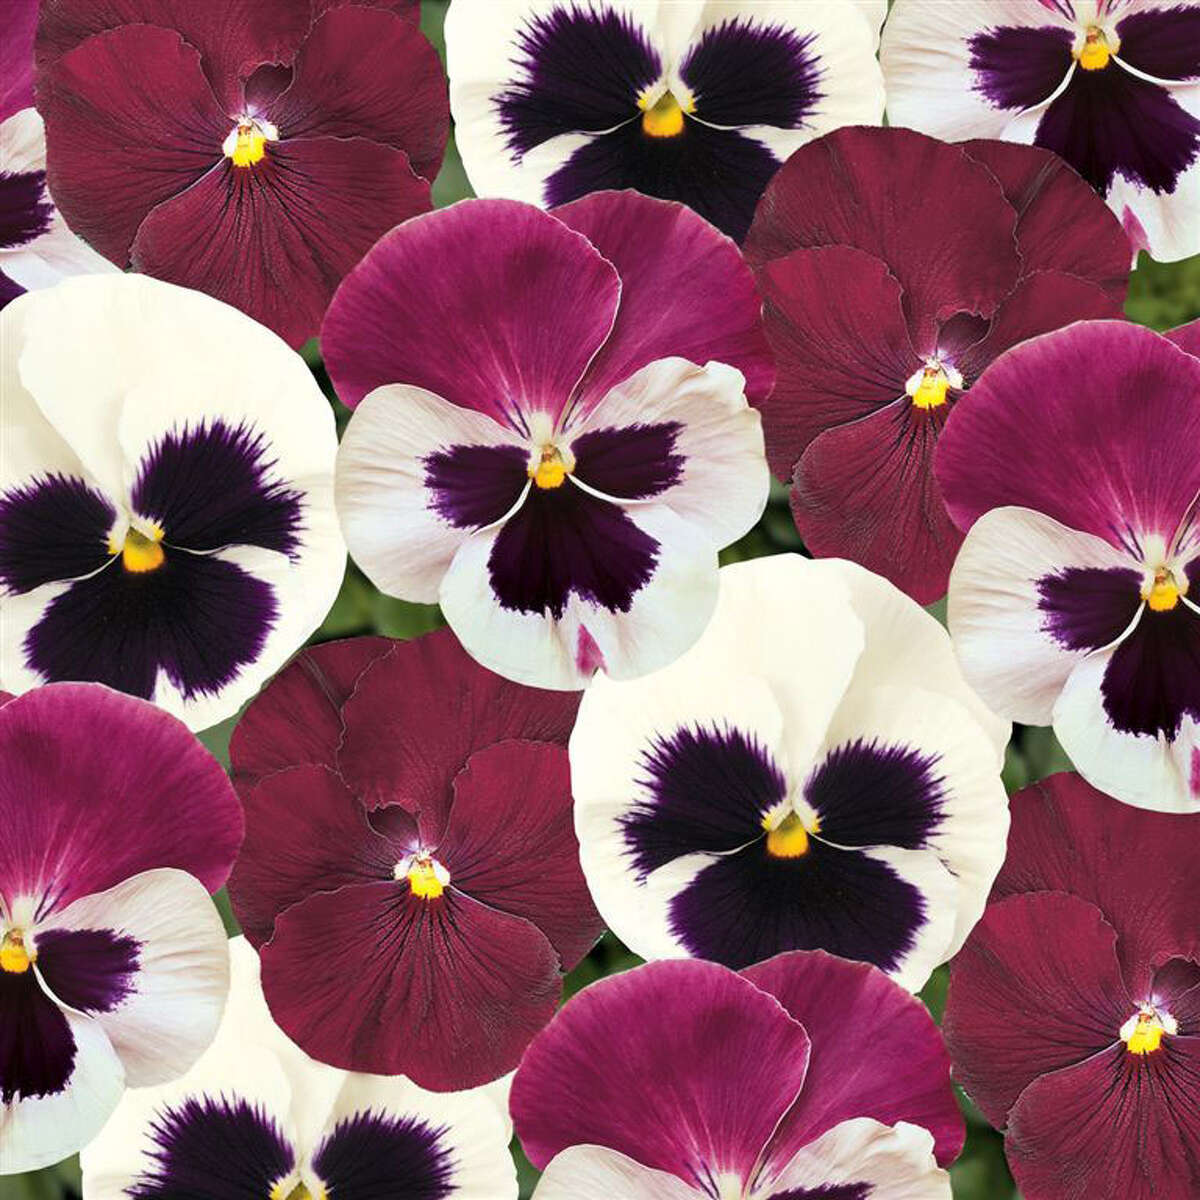 October is the month to plant cool season annuals such as pansies, which work in containers as well as in the soil.